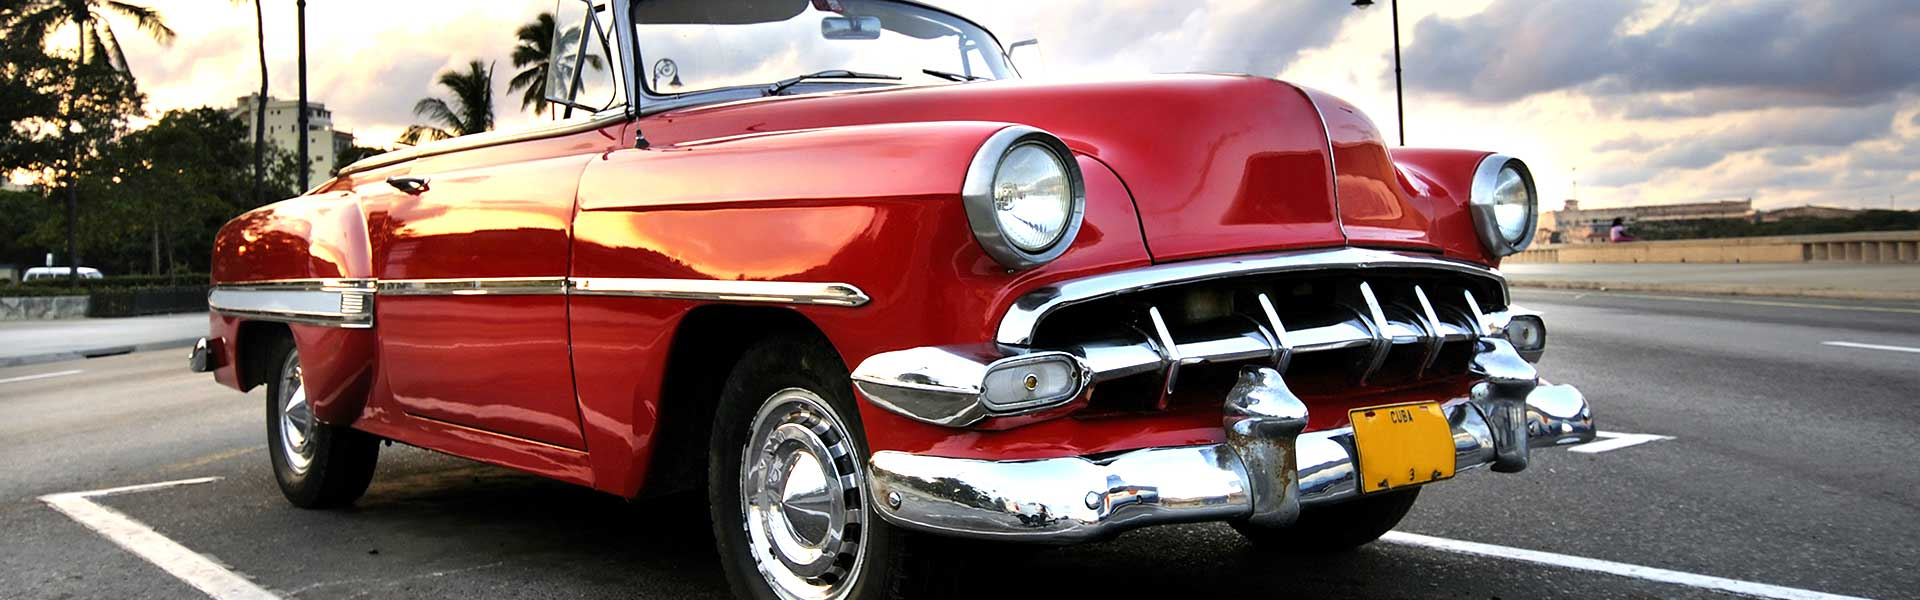 Famous Classic Cars For Sale Pa Images - Classic Cars Ideas - boiq.info